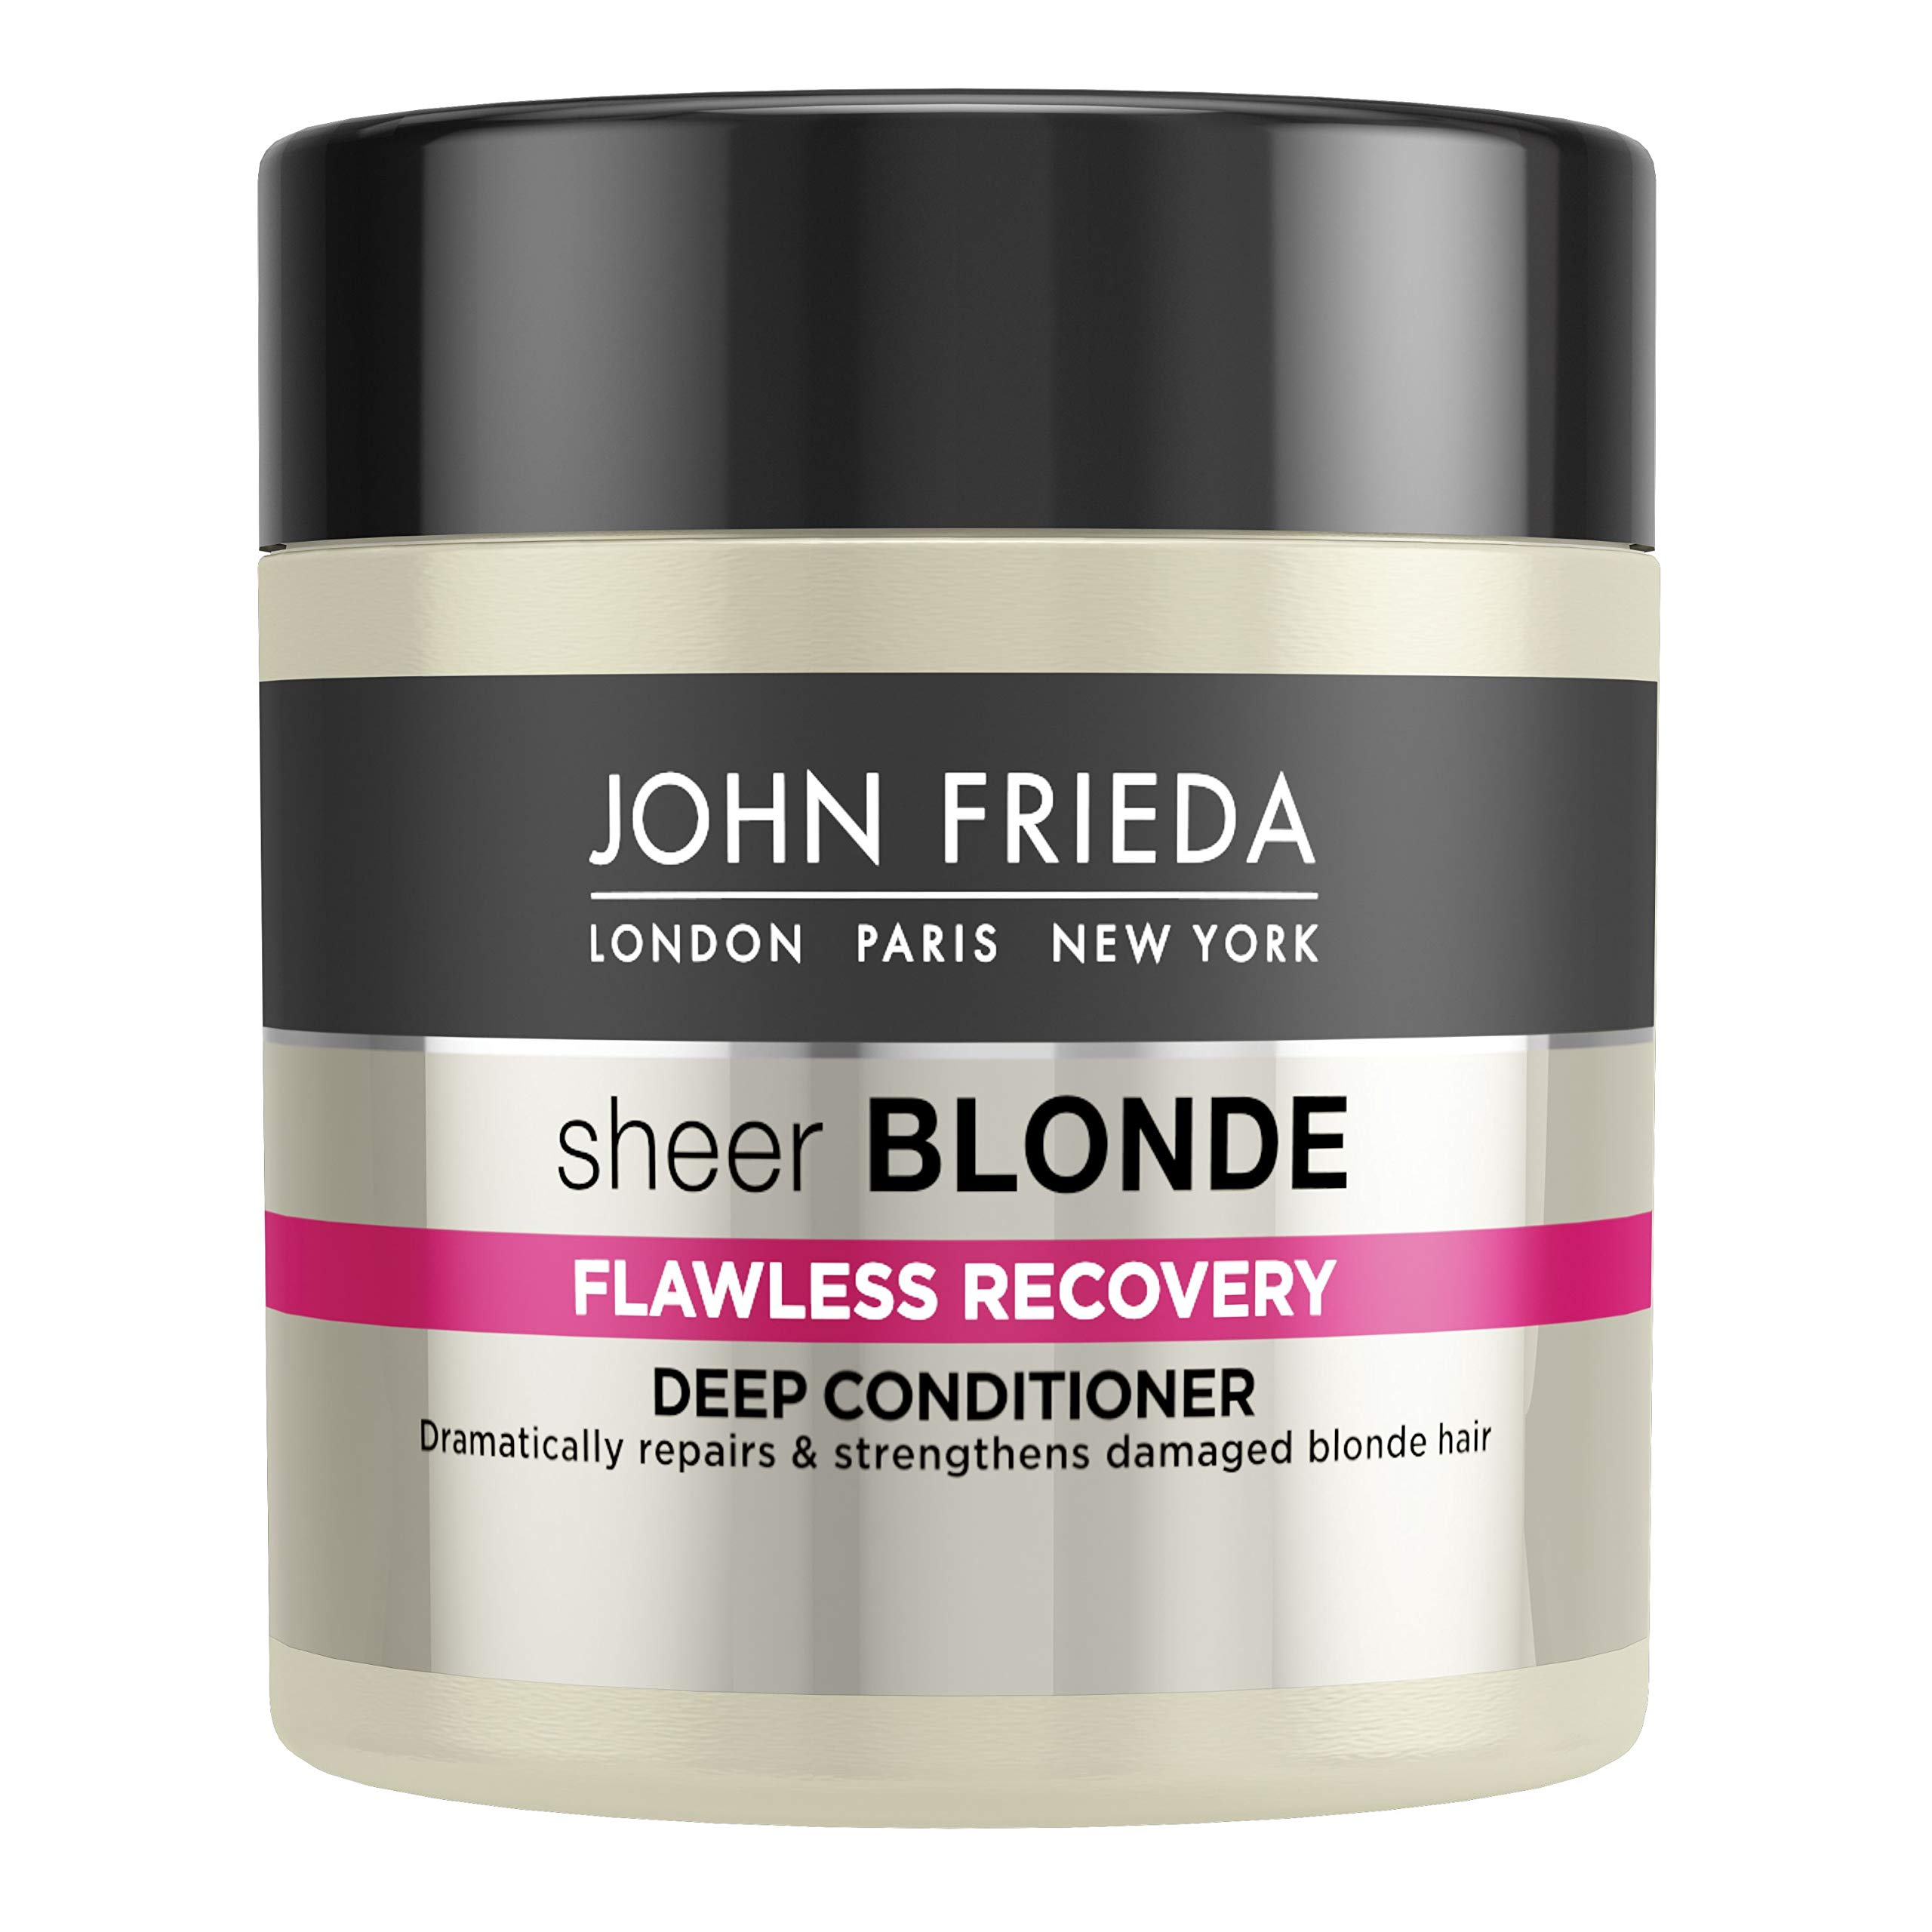 John Frieda Sheer Blonde Flawless Recovery Deep Conditioner Treatment for Dry and Damaged Blonde Hair, 150 ml product image